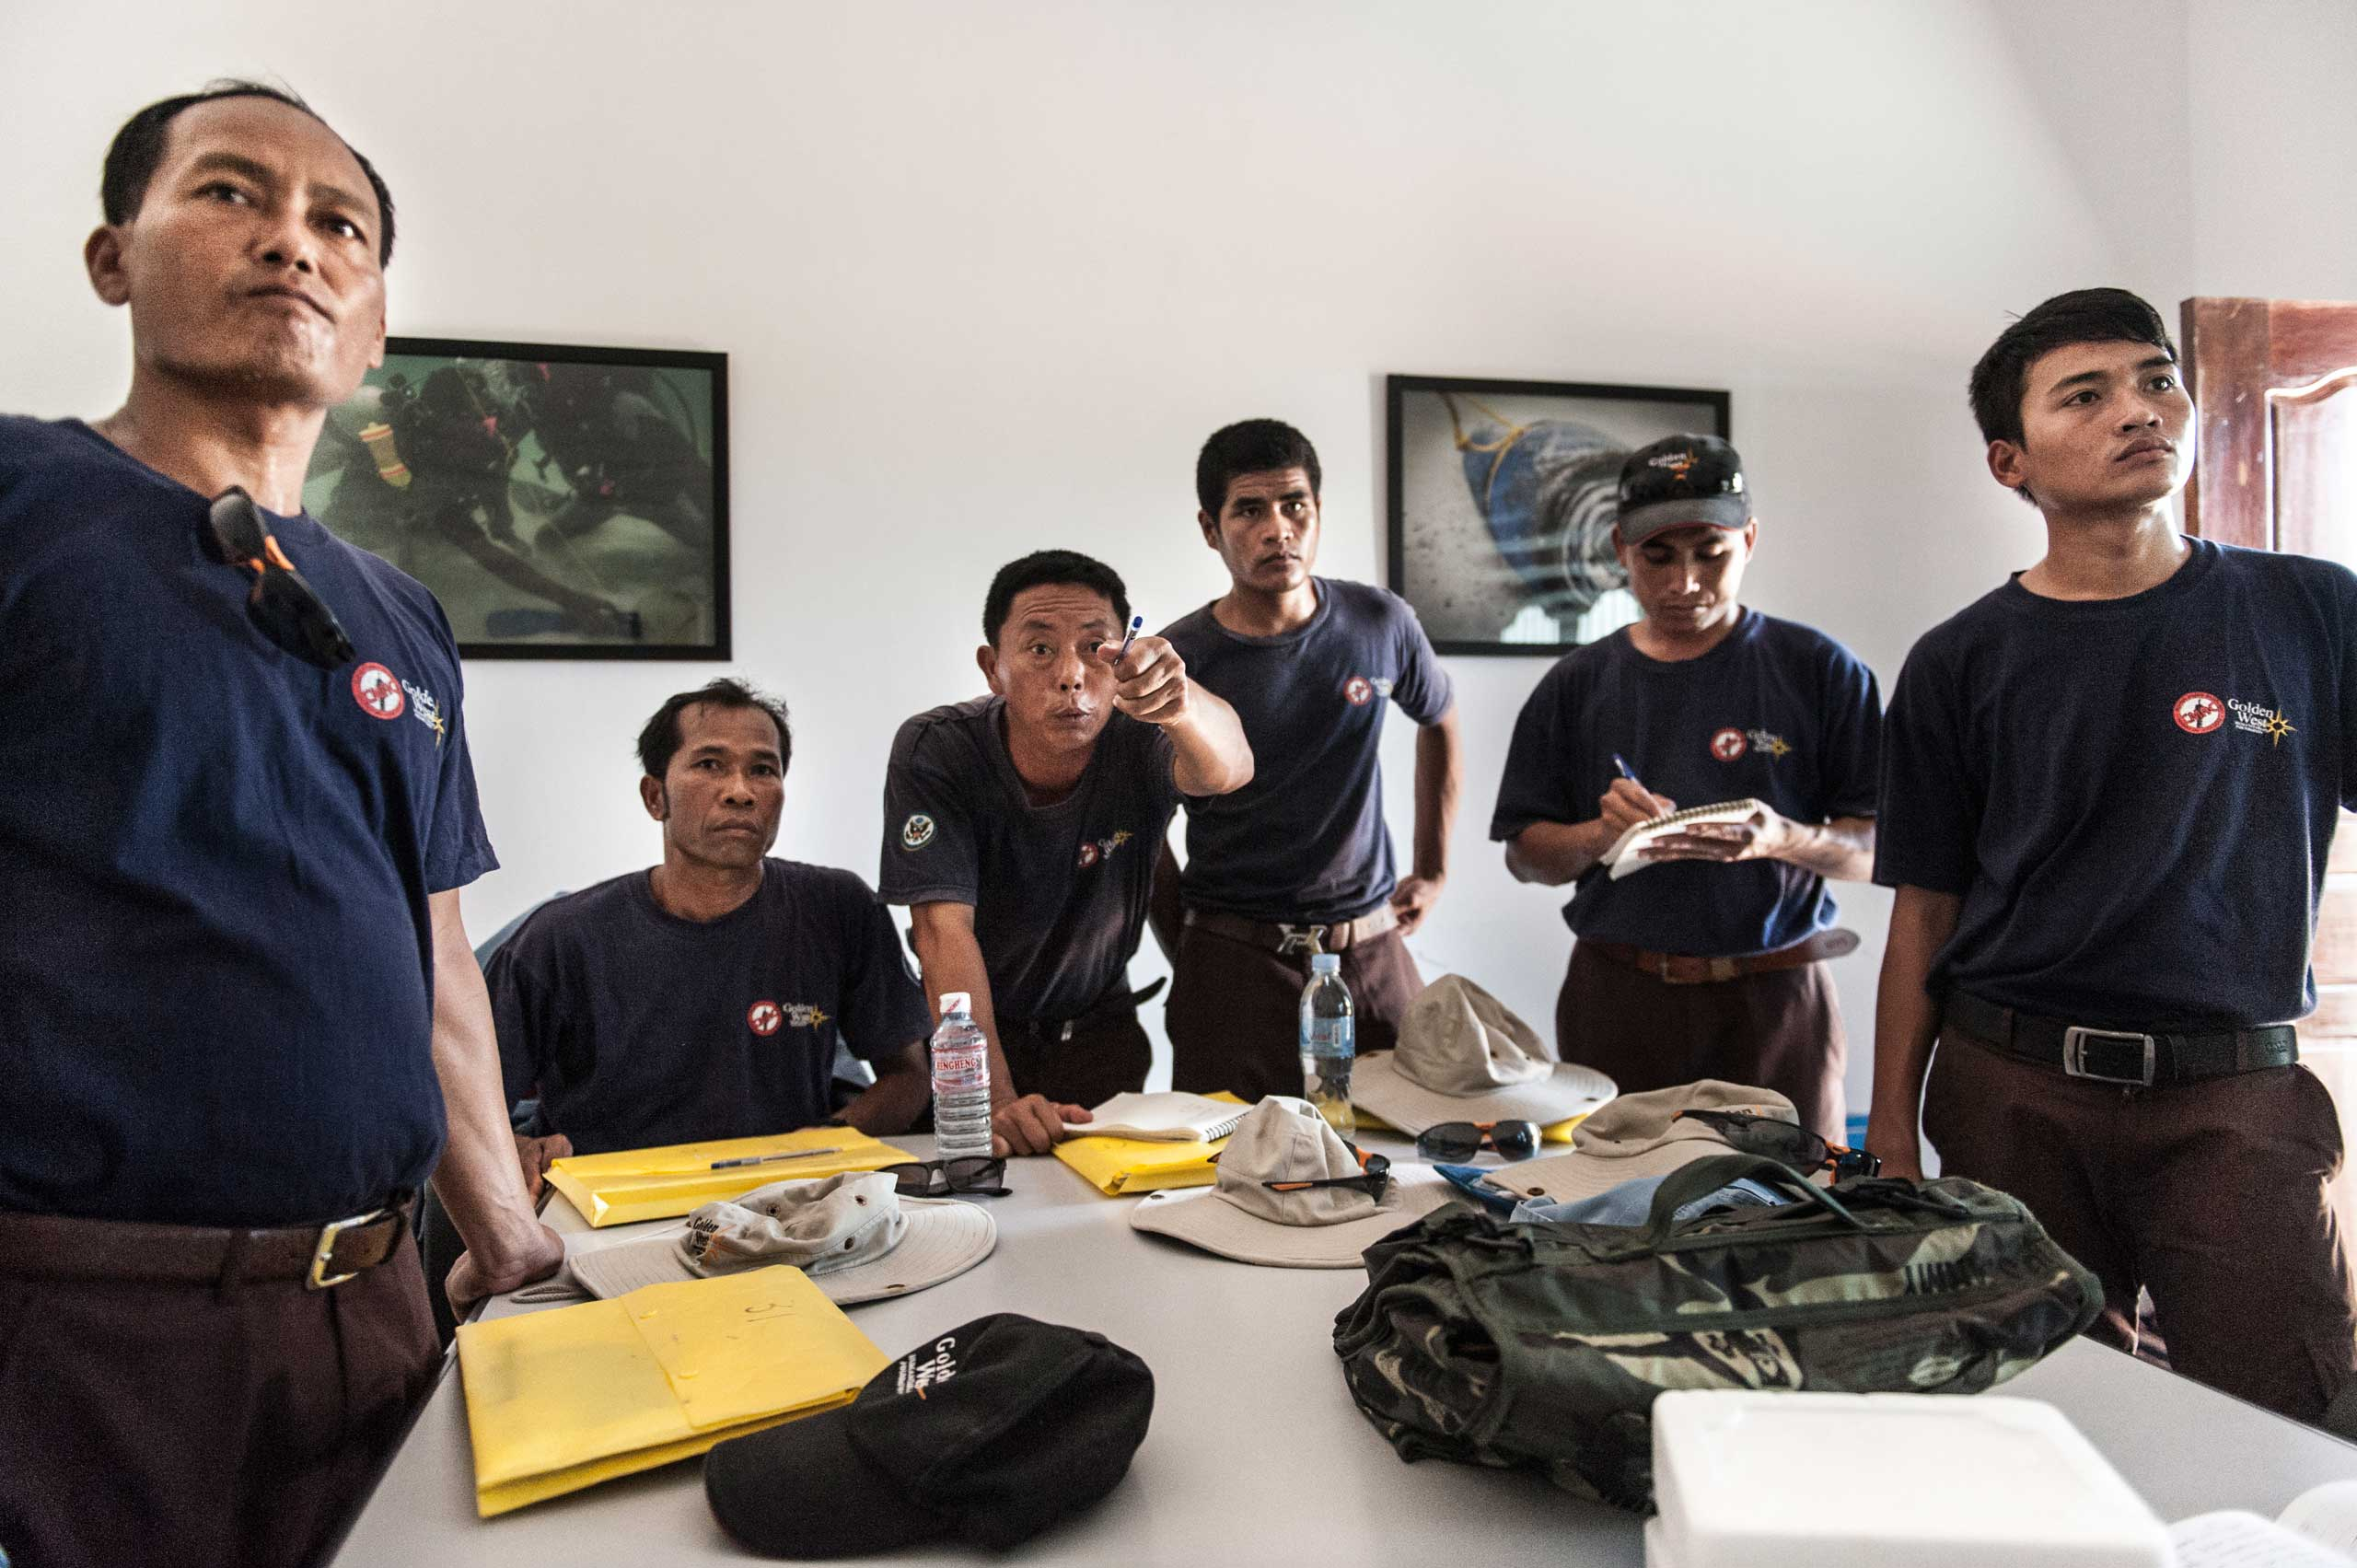 Members of the UXO salvage dive team take part in a mission brief in their dive shop in Kampong Chhanang, Cambodia in Sept. 2014.